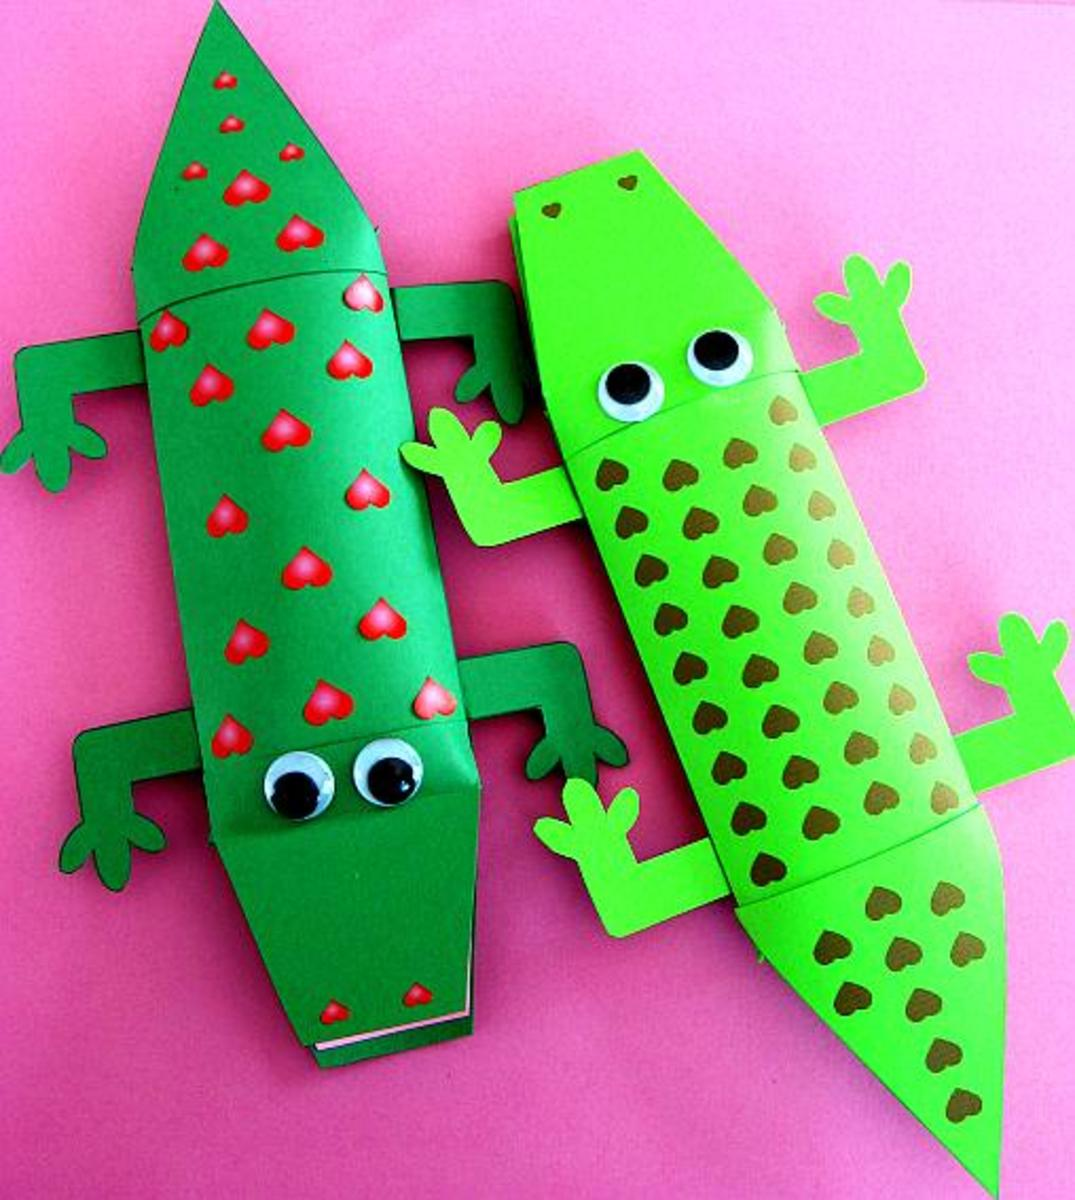 How cute are these little green alligators?  Print out your own but remember you will need scissors and glue to assemble them.